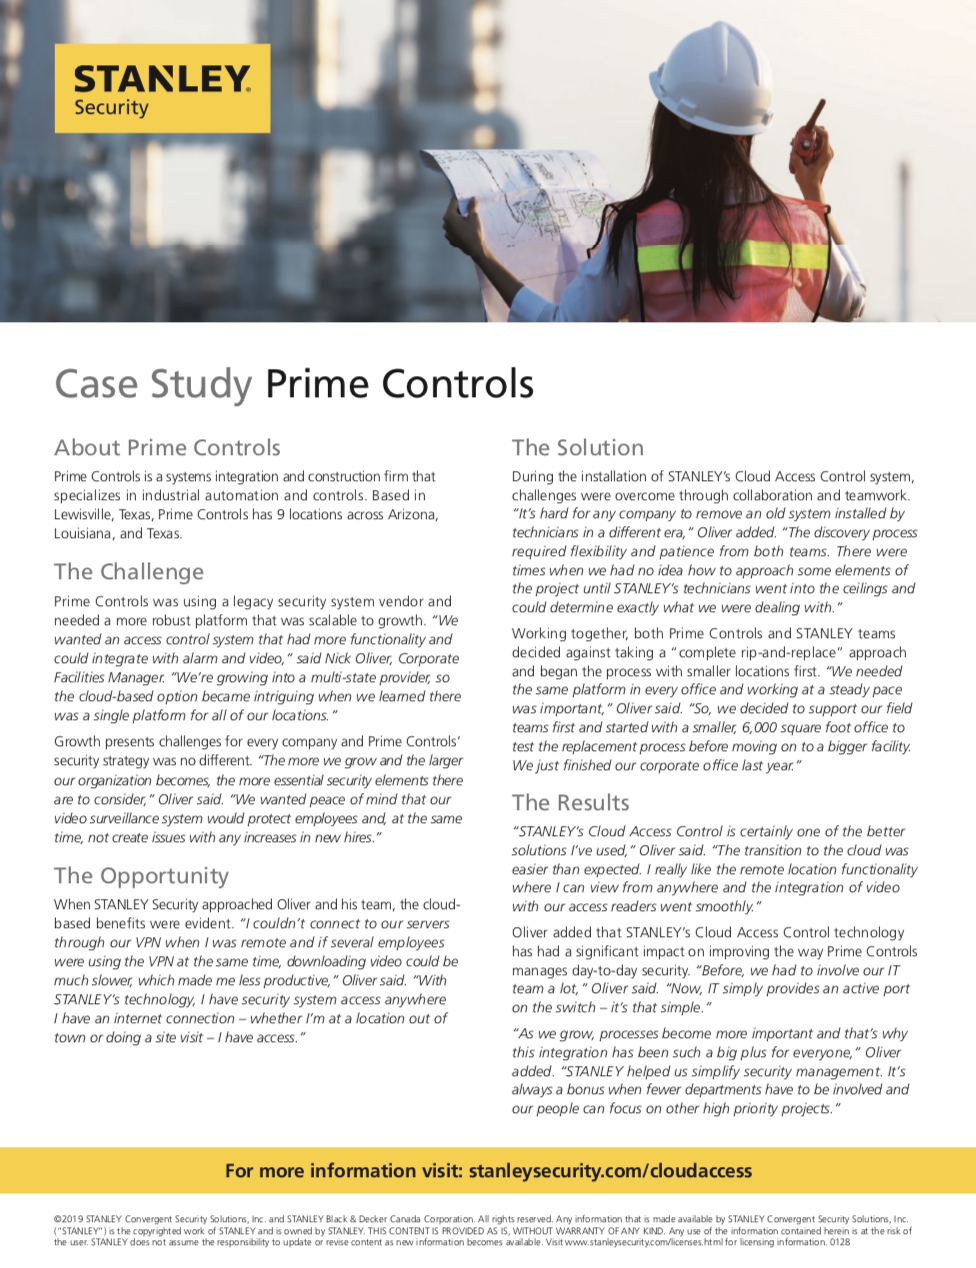 Learn how Prime Controls benefited from STANLEY Security Cloud-based access control